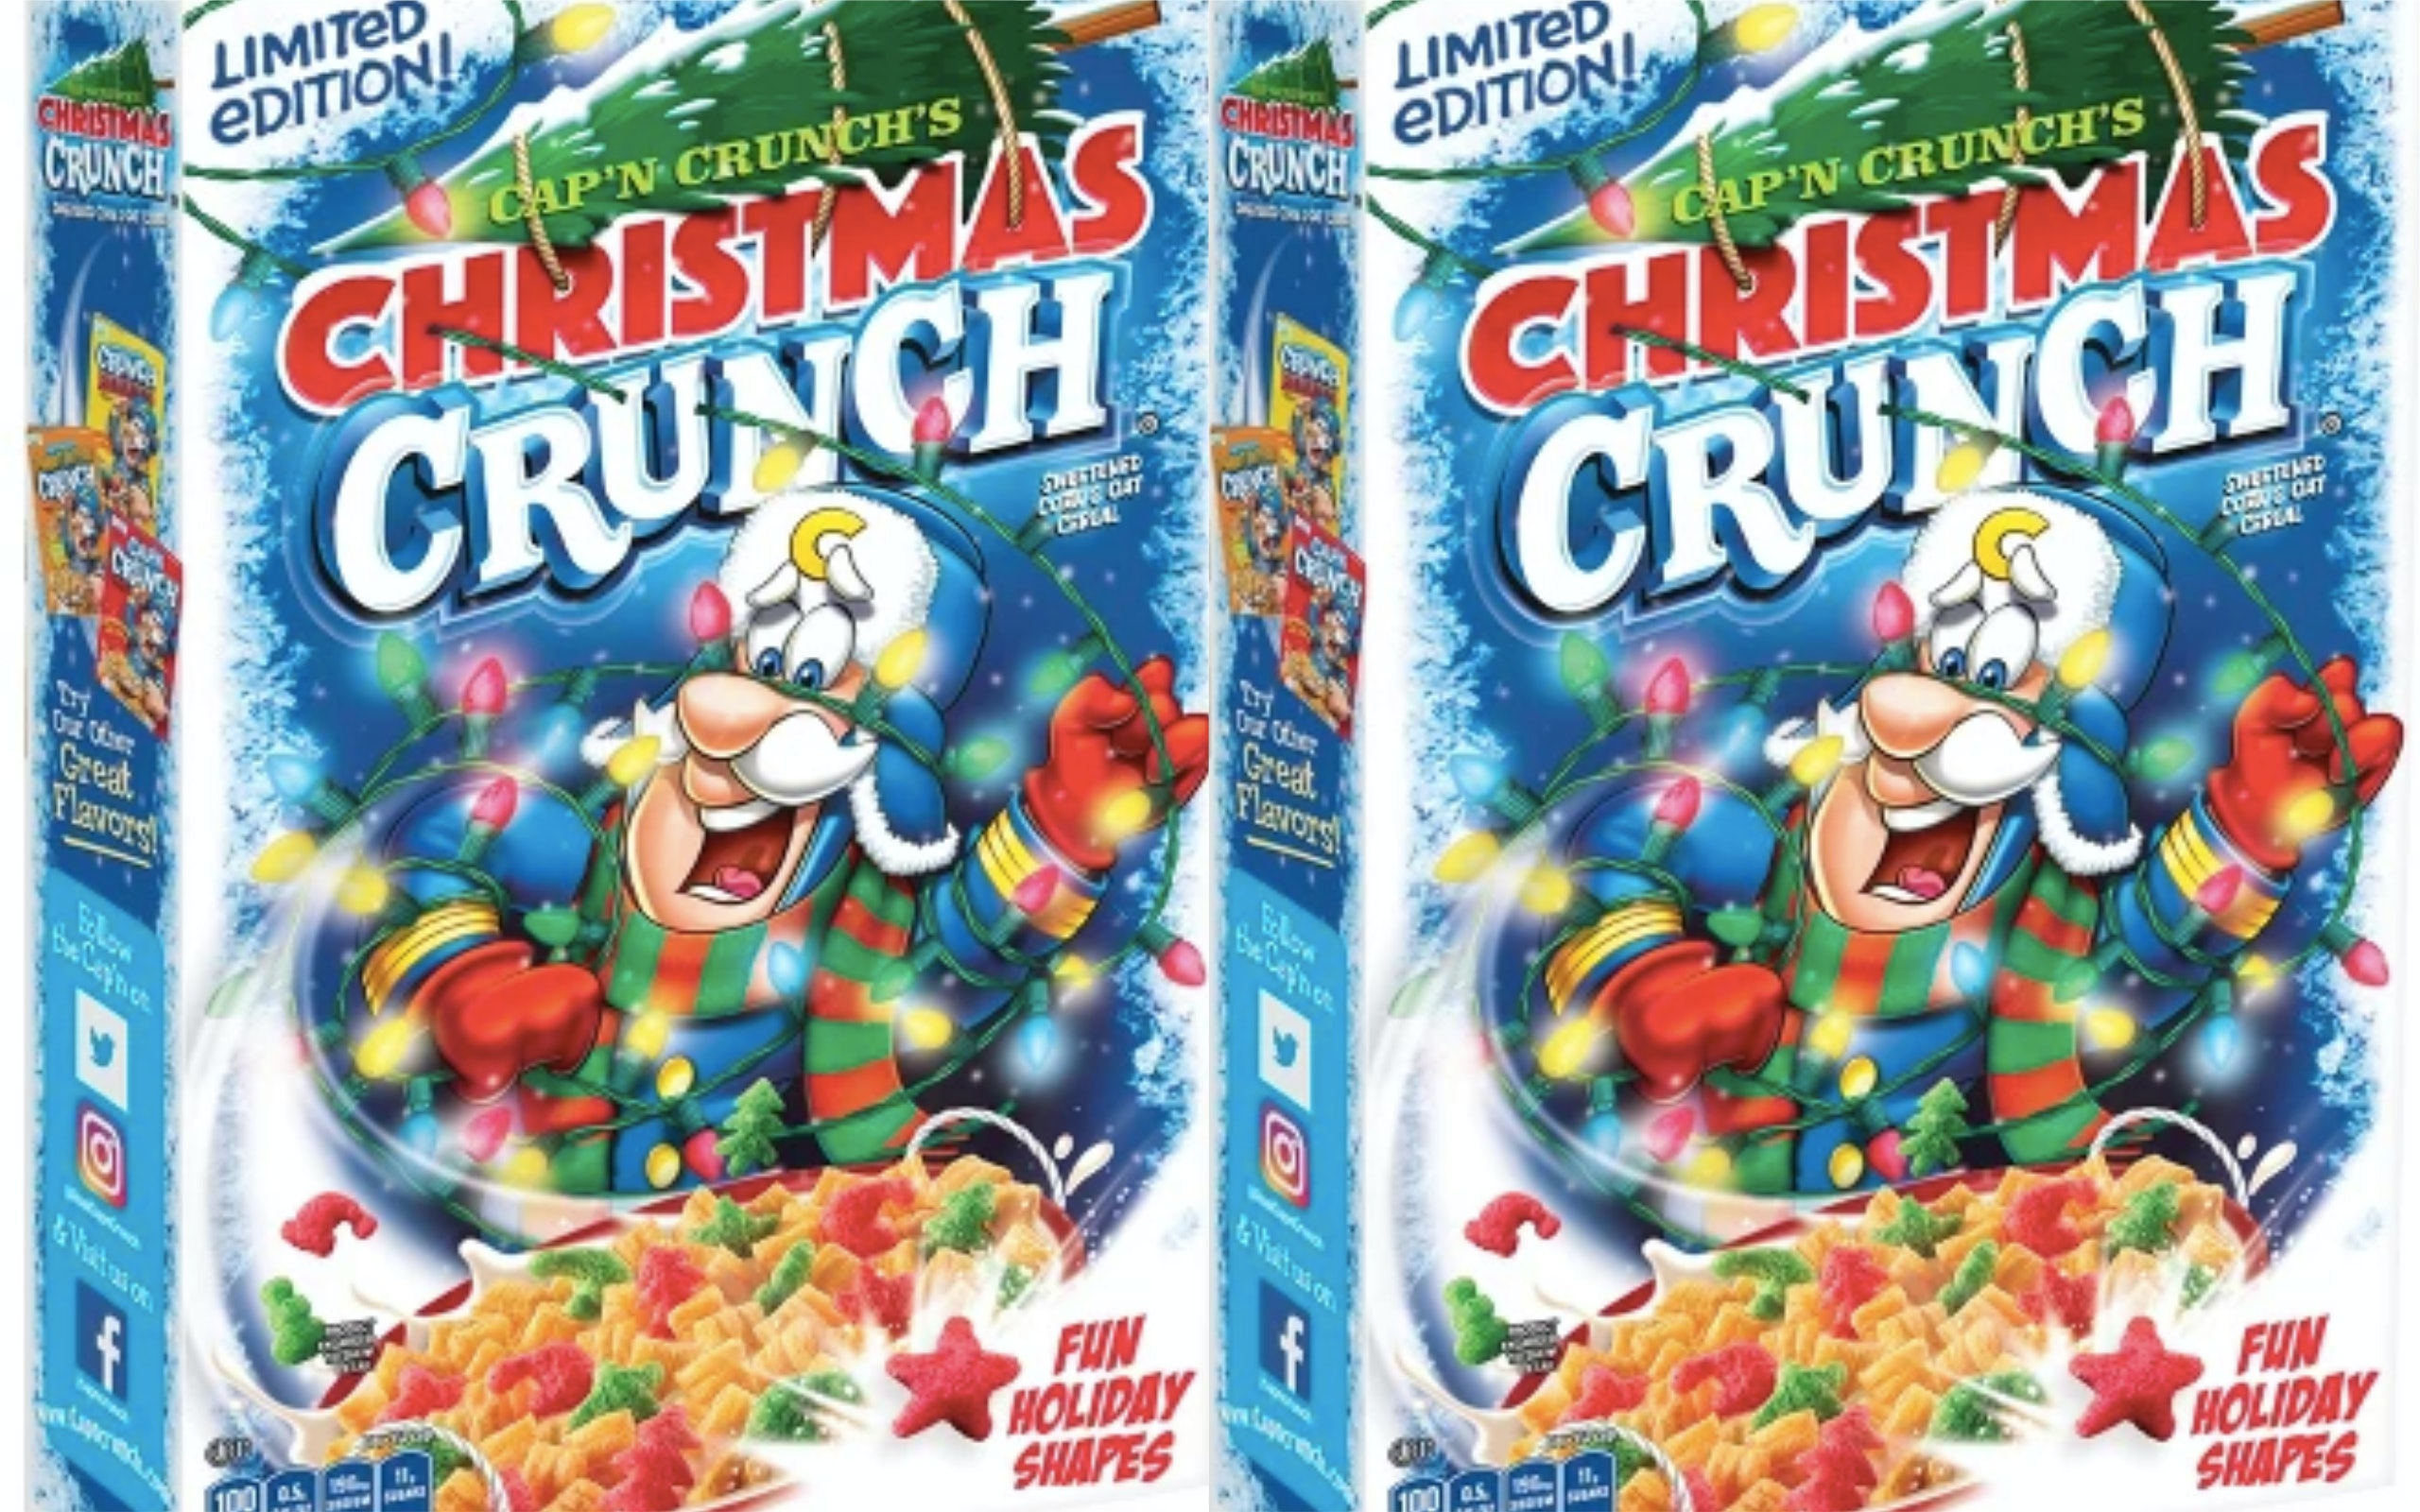 Christmas Crunch Cereal.Cap N Crunch S Christmas Crunch Is Available For A Limited